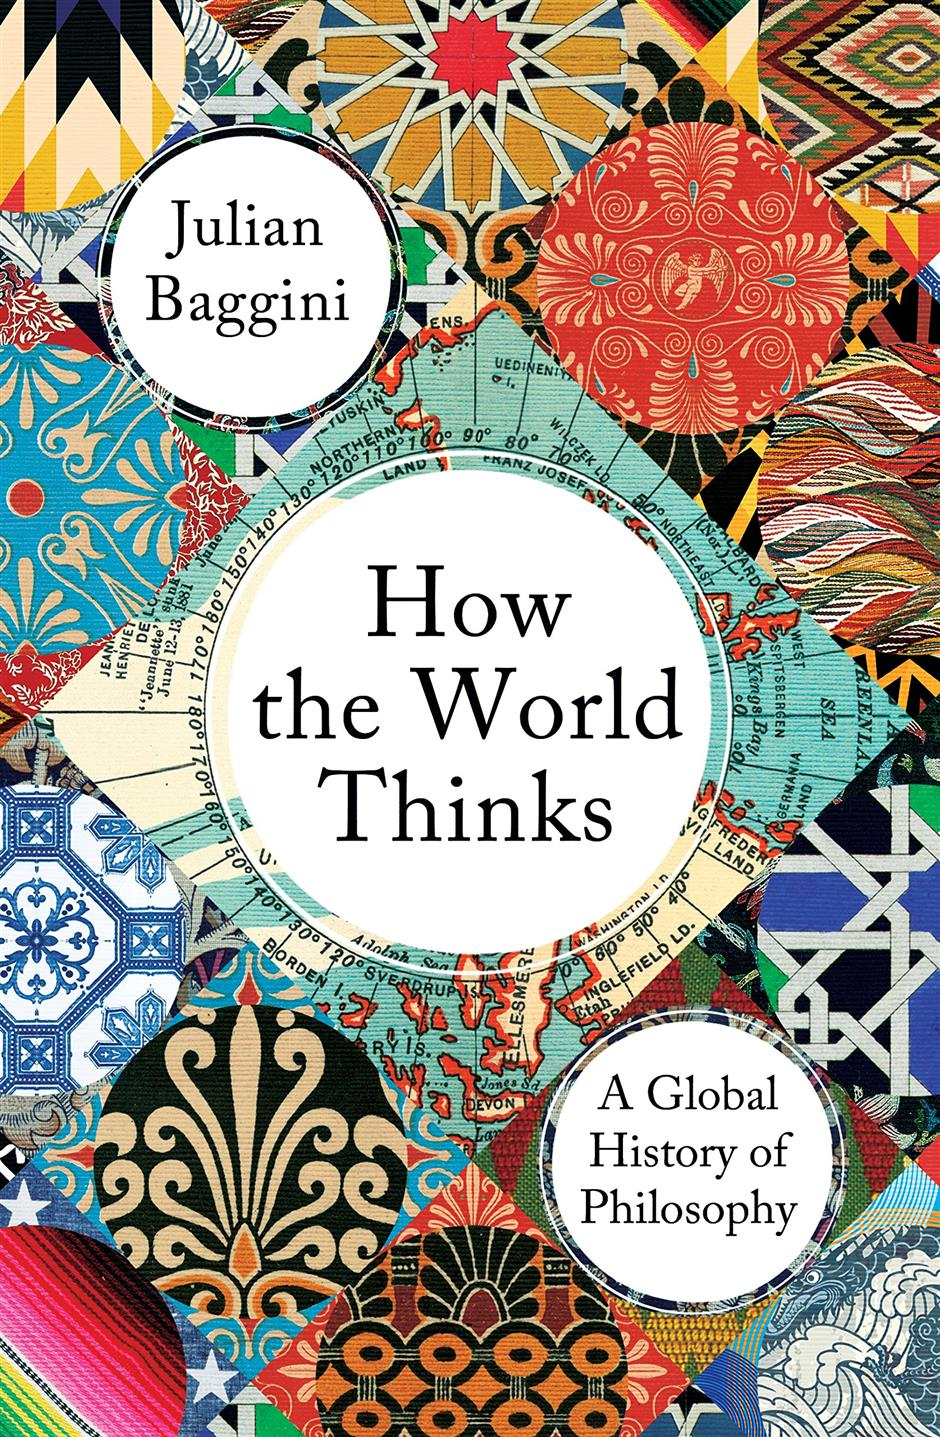 Julian Baggini: How the World Thinks